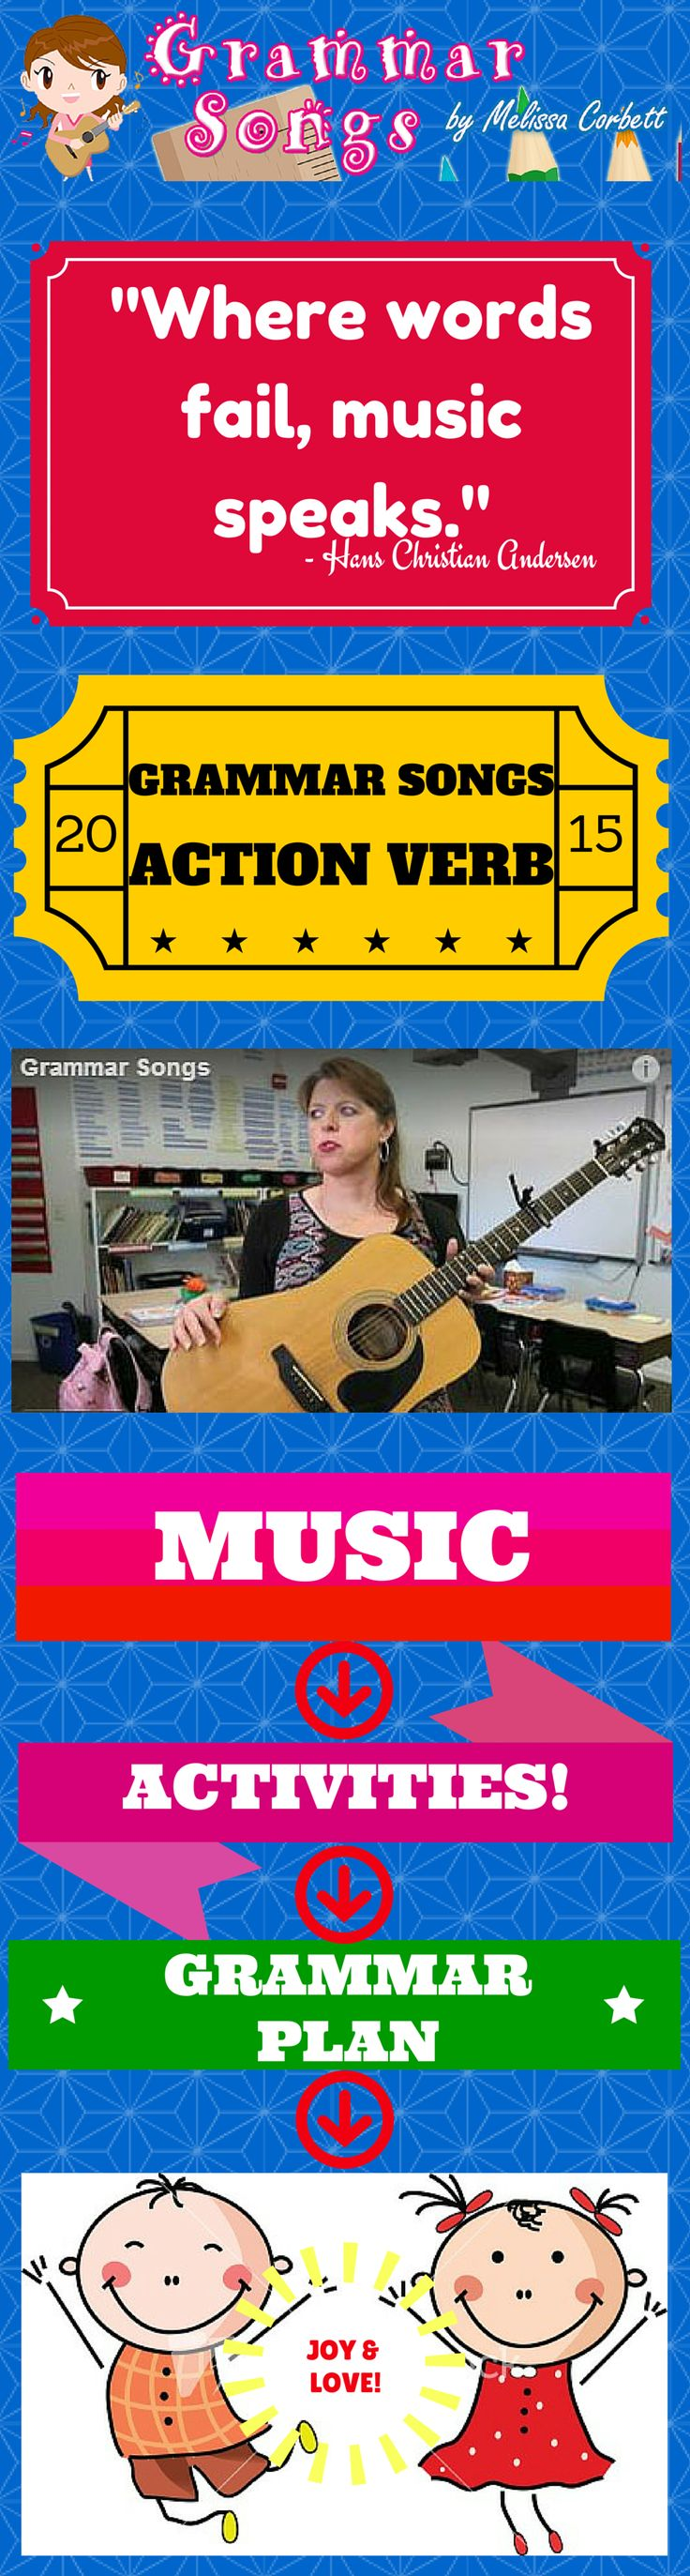 (Free Grammar Videos and Activities) Verb Song New by Melissa... This song not only illustrates clearly the concept of the action verb, but it demonstrates in an effective way why verbs are necessary when writing. Although the concept of an action verb is a simple concept, this song takes verbs further than the level of identification as a part of speech. The addition of the importance of the action verb (and quality of action verb used) is relevant to all elementary grade levels.